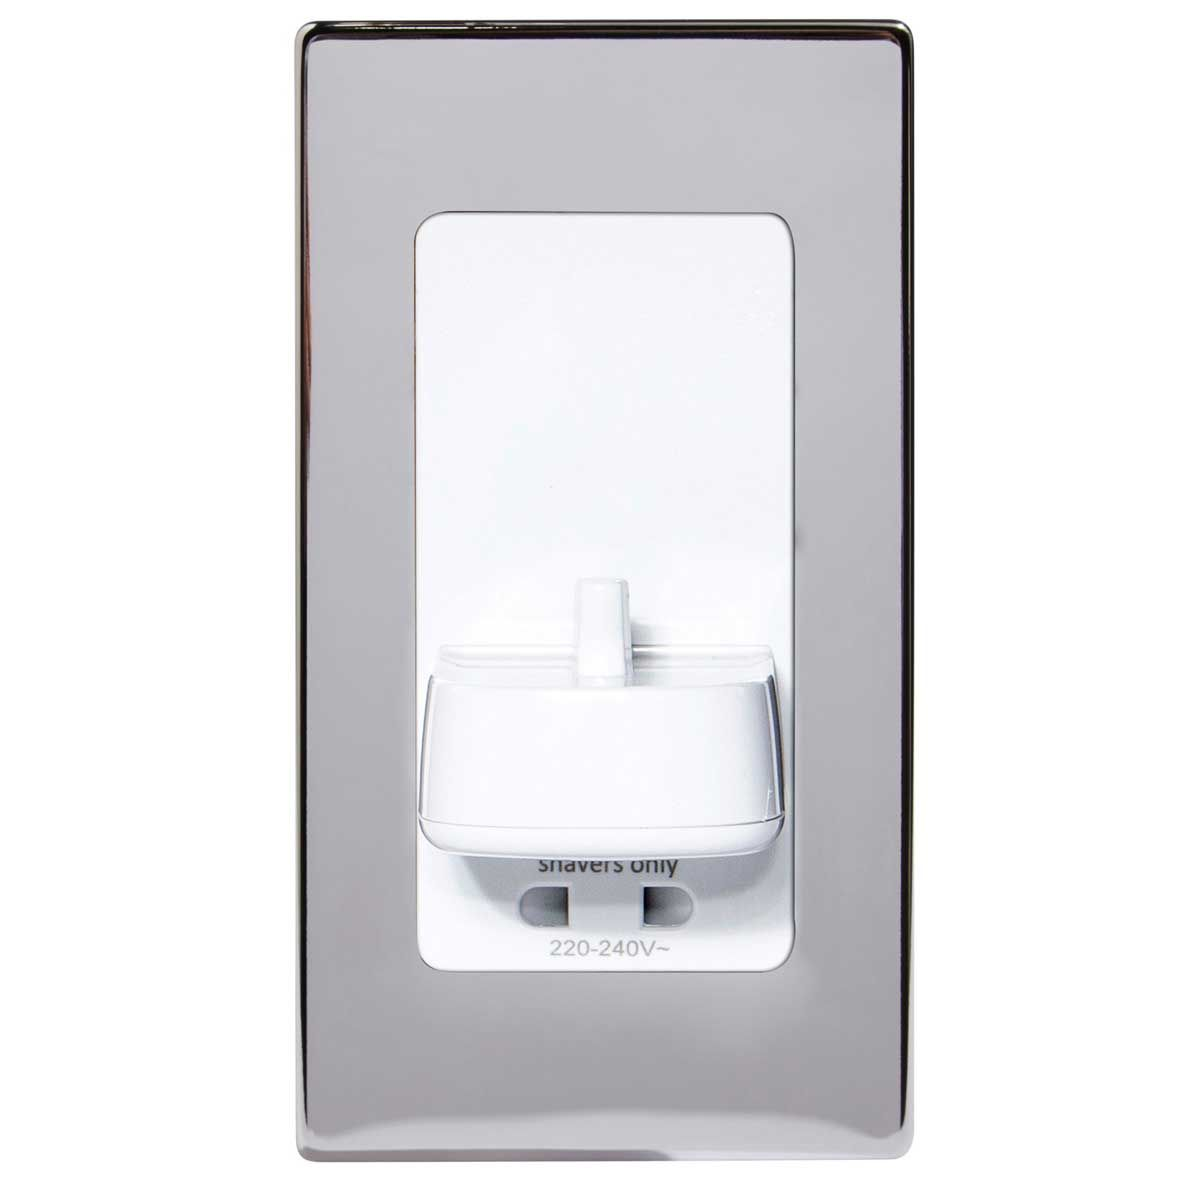 ProofVision TBCharge Electric Toothbrush Charger with Shaver Socket Polished Steel